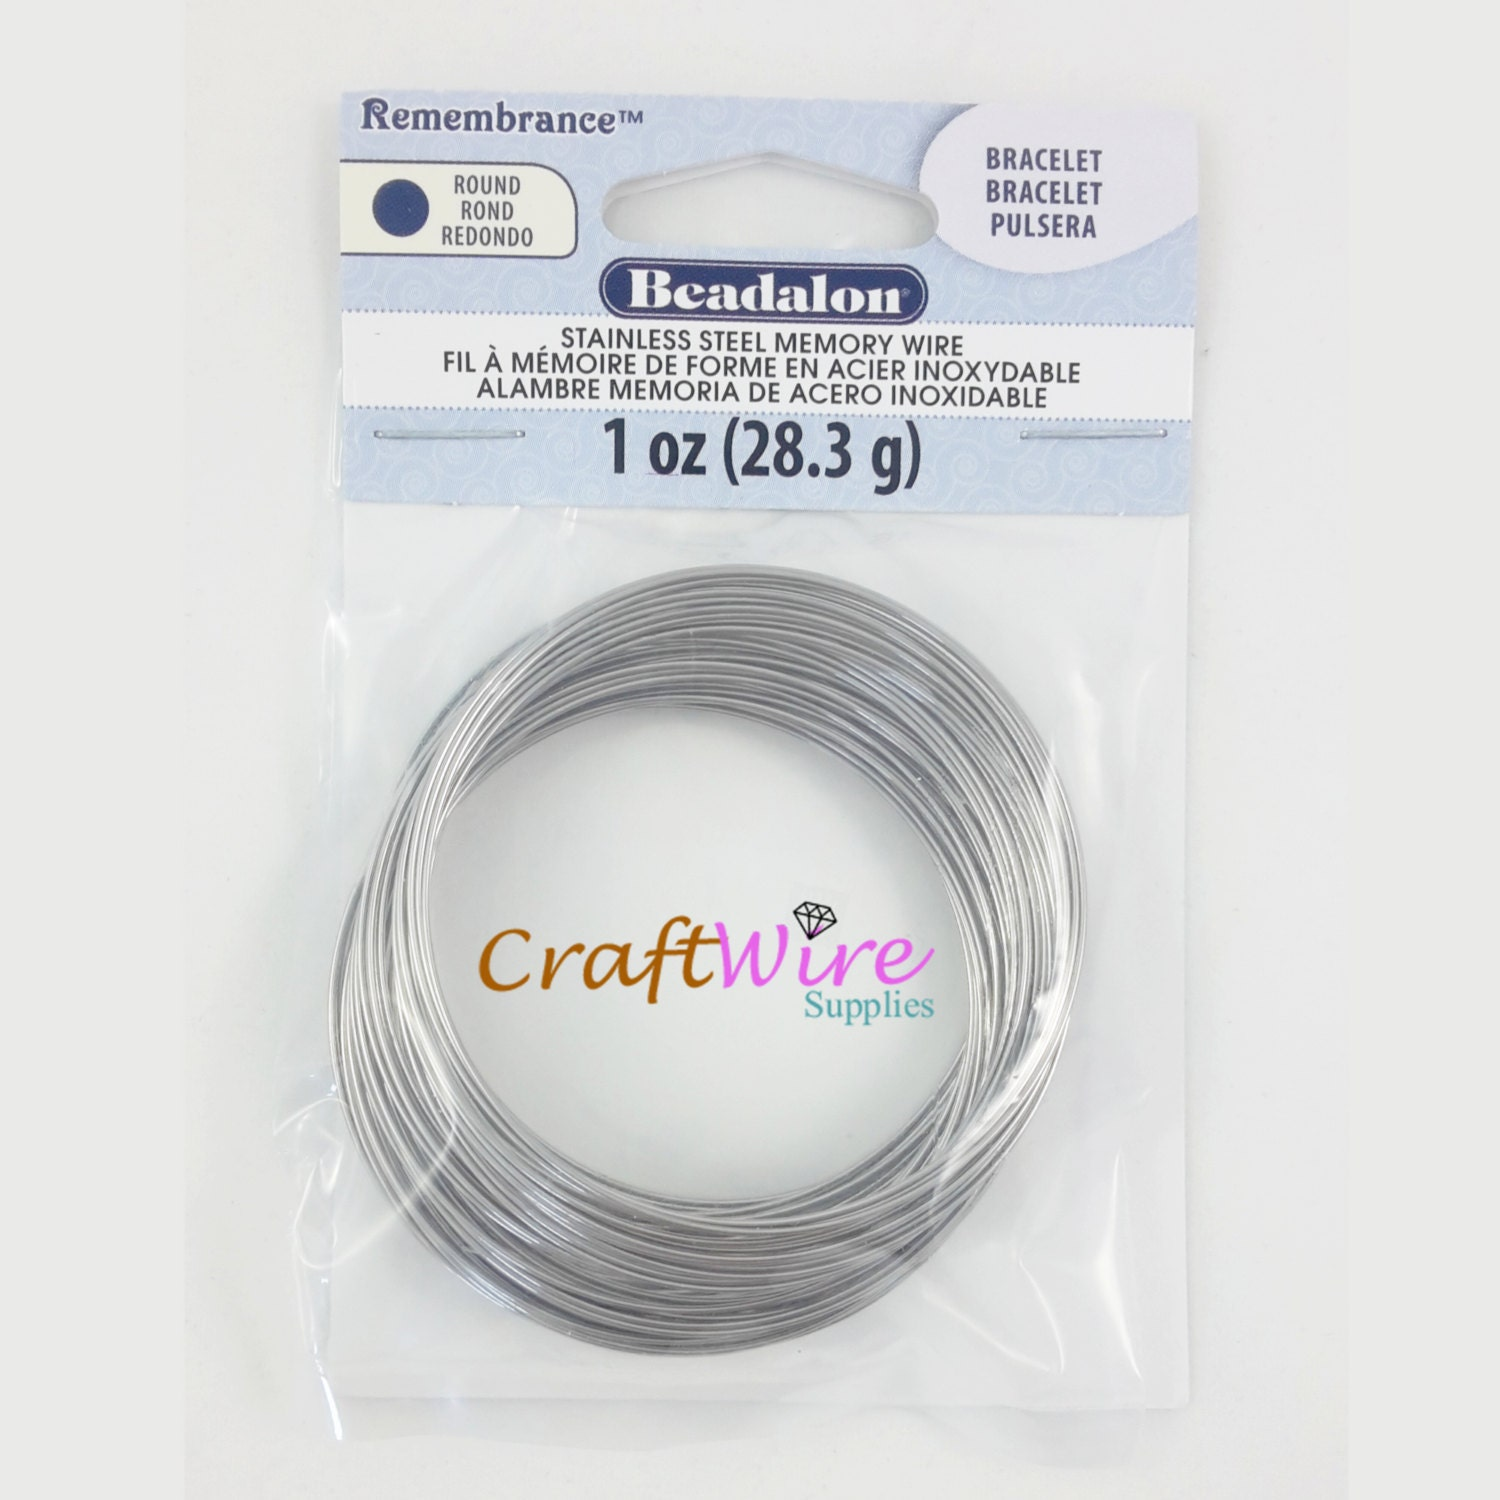 1oz (75 coils) Beadalon Memory wire Remembrance, Stainless Steel ...